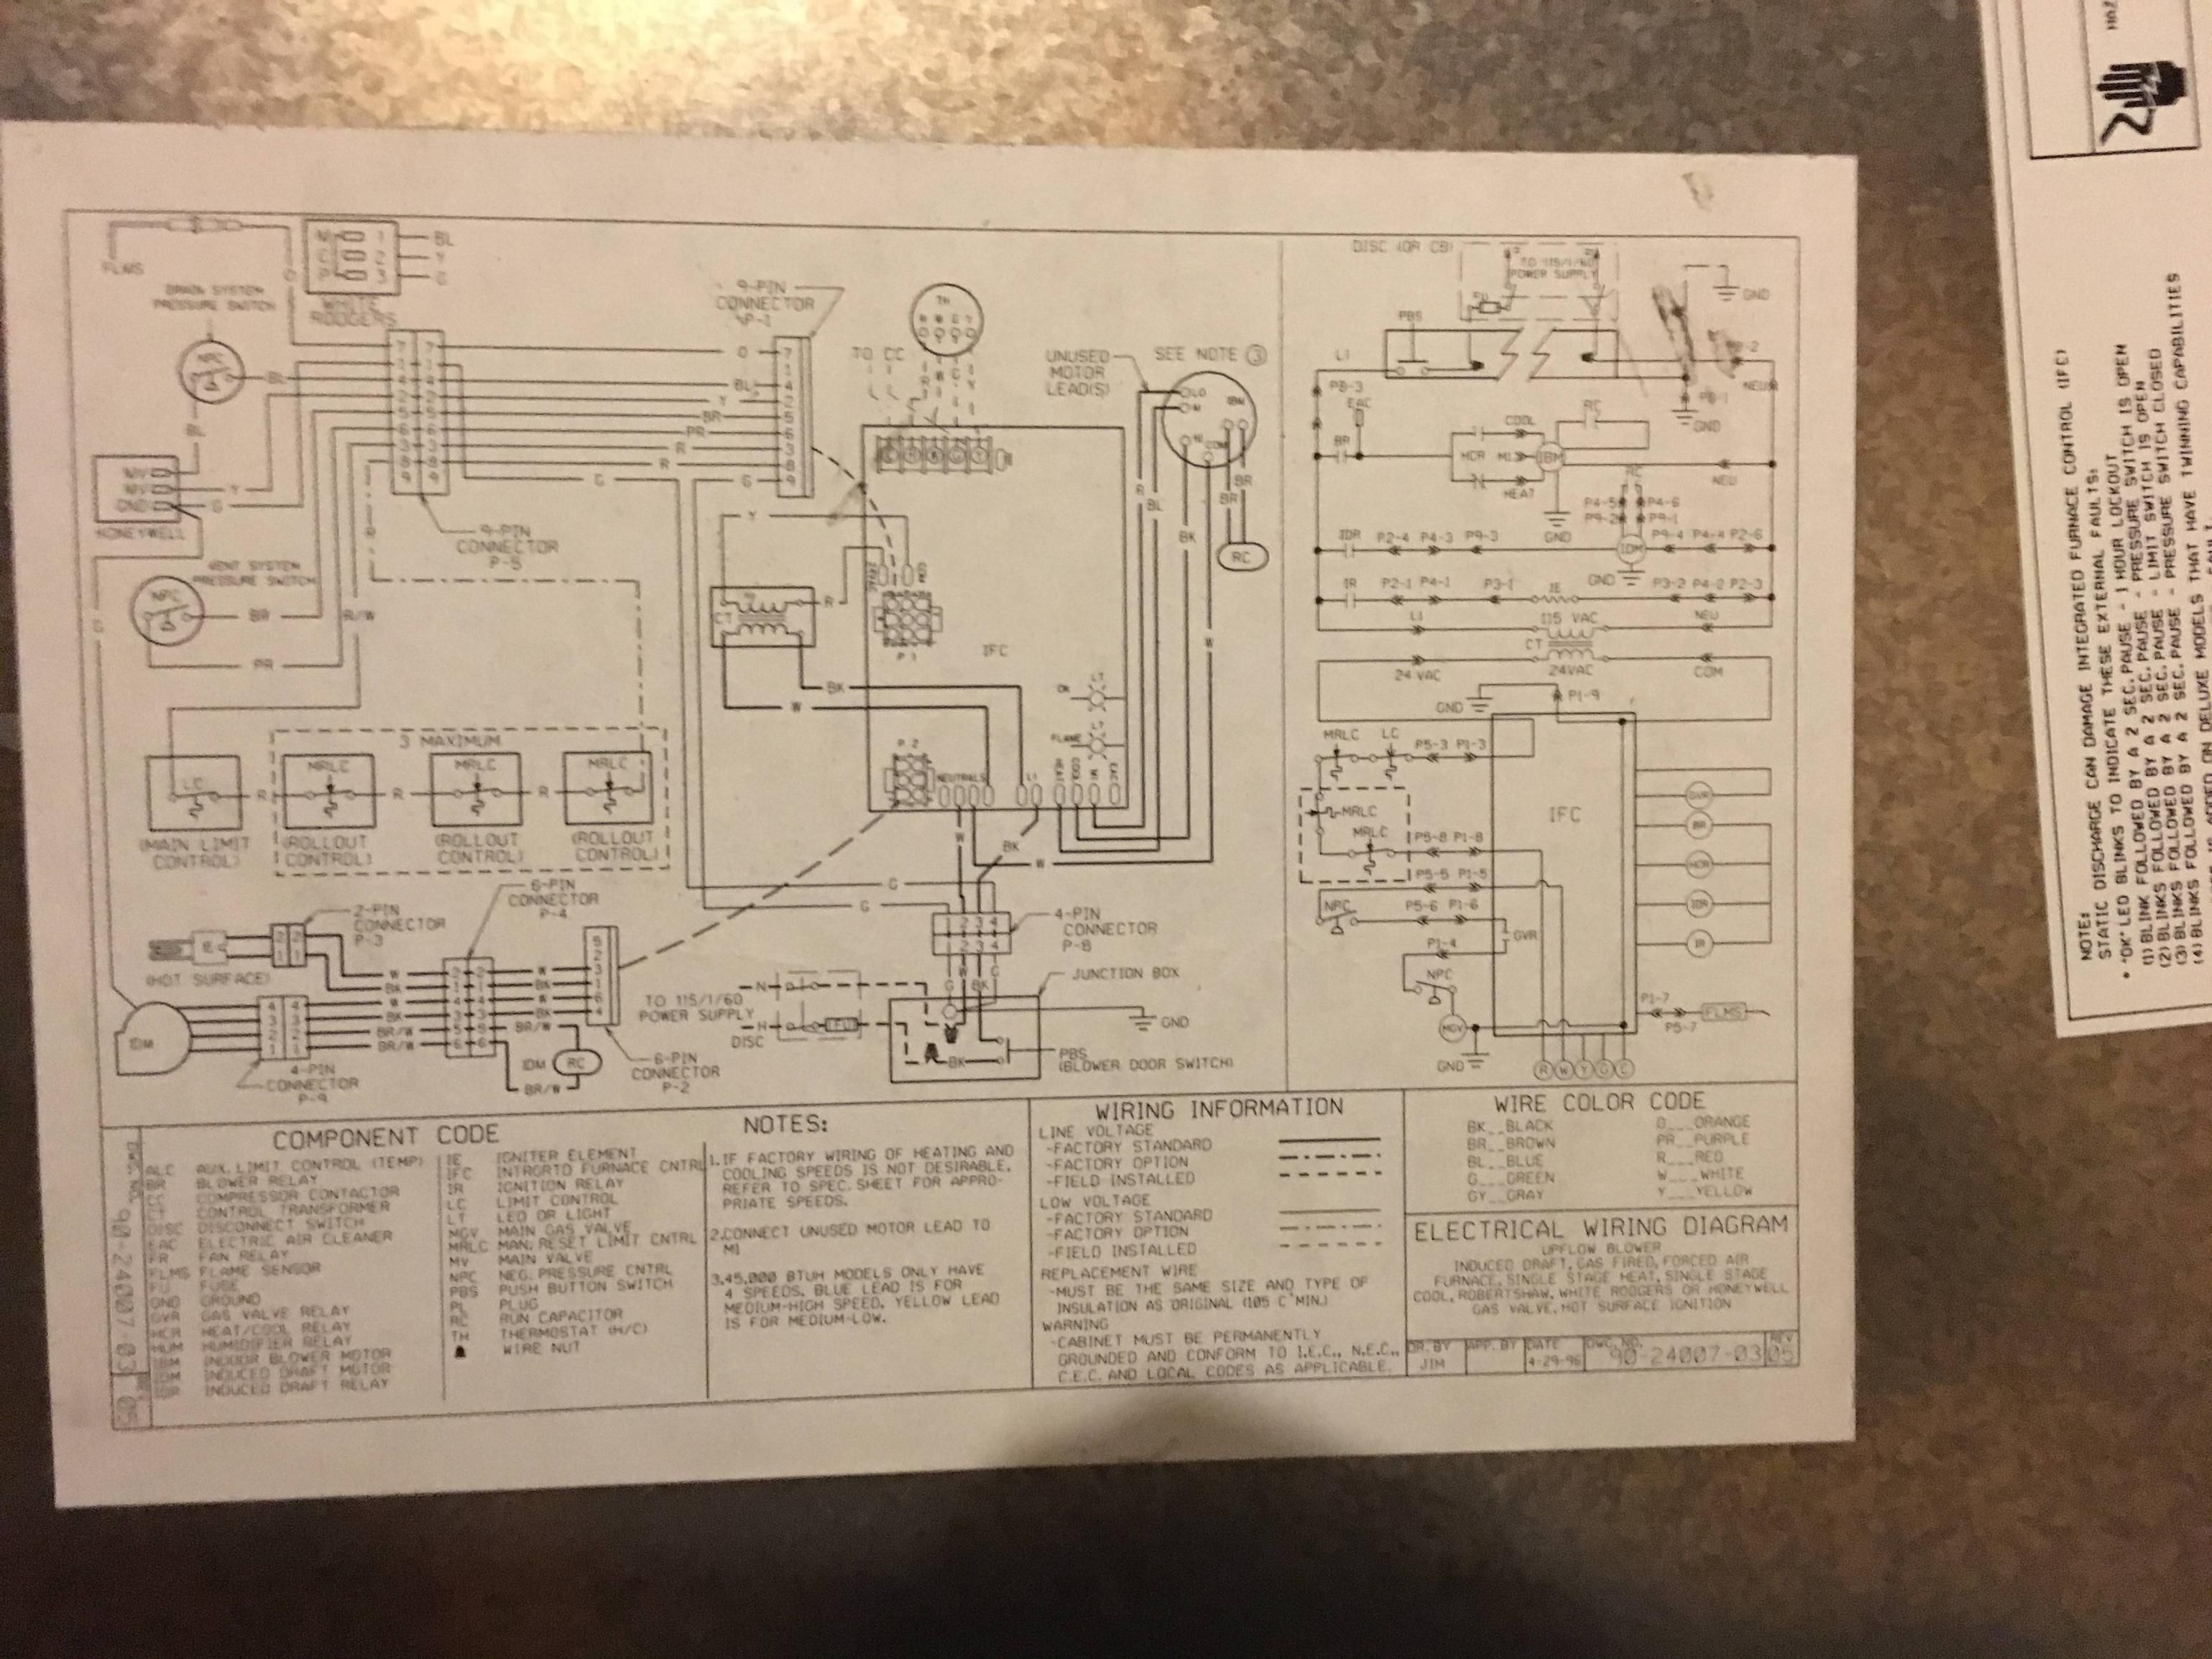 Armstrong Air Conditioning Wiring Diagram on armstrong air conditioning parts, arcoaire wiring diagram, tempstar wiring diagram, general electric wiring diagram, comfortmaker wiring diagram, trane wiring diagram,